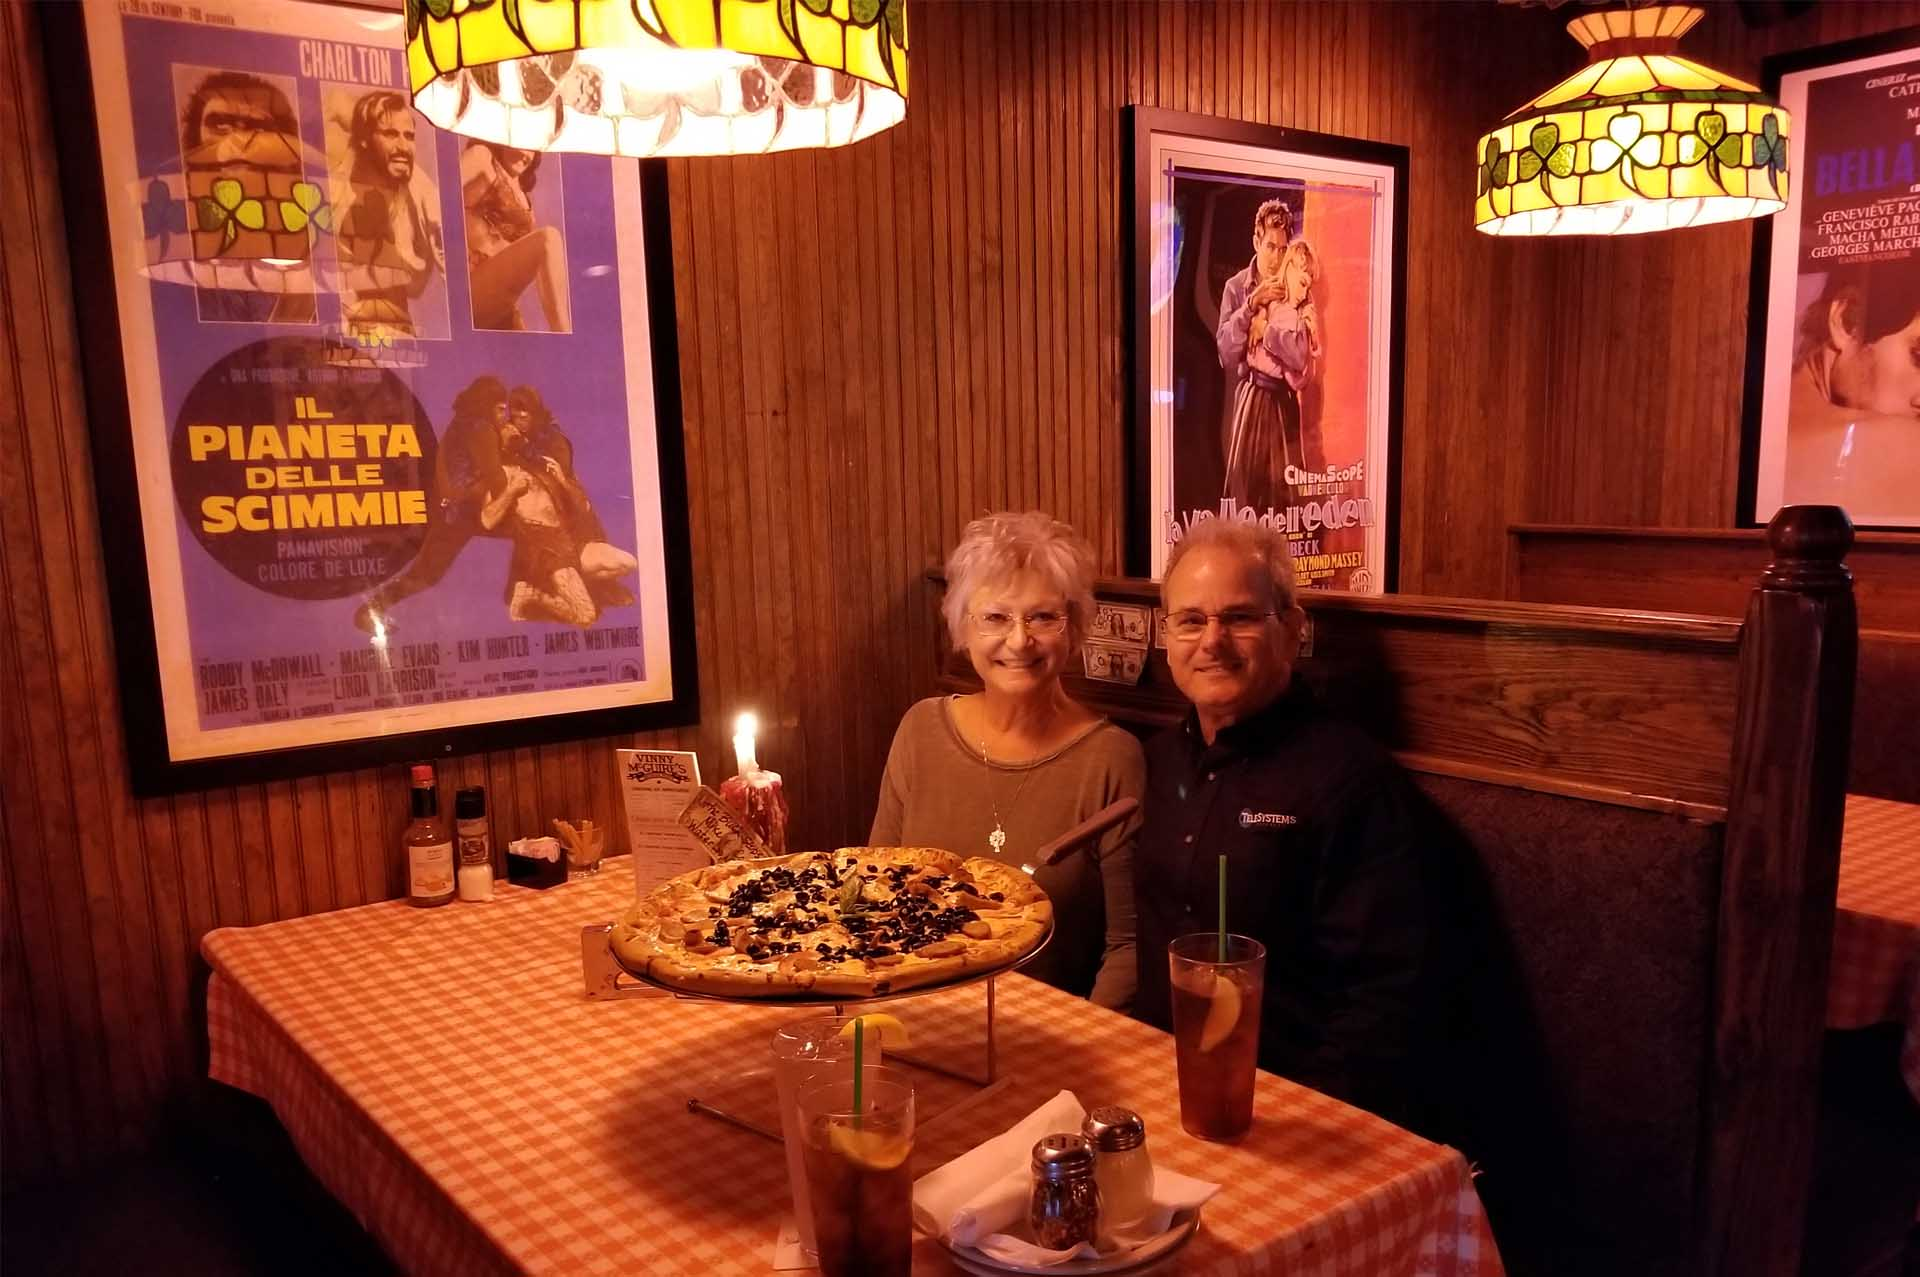 smiling couple sitting at restaurant table with large pizza in front of them